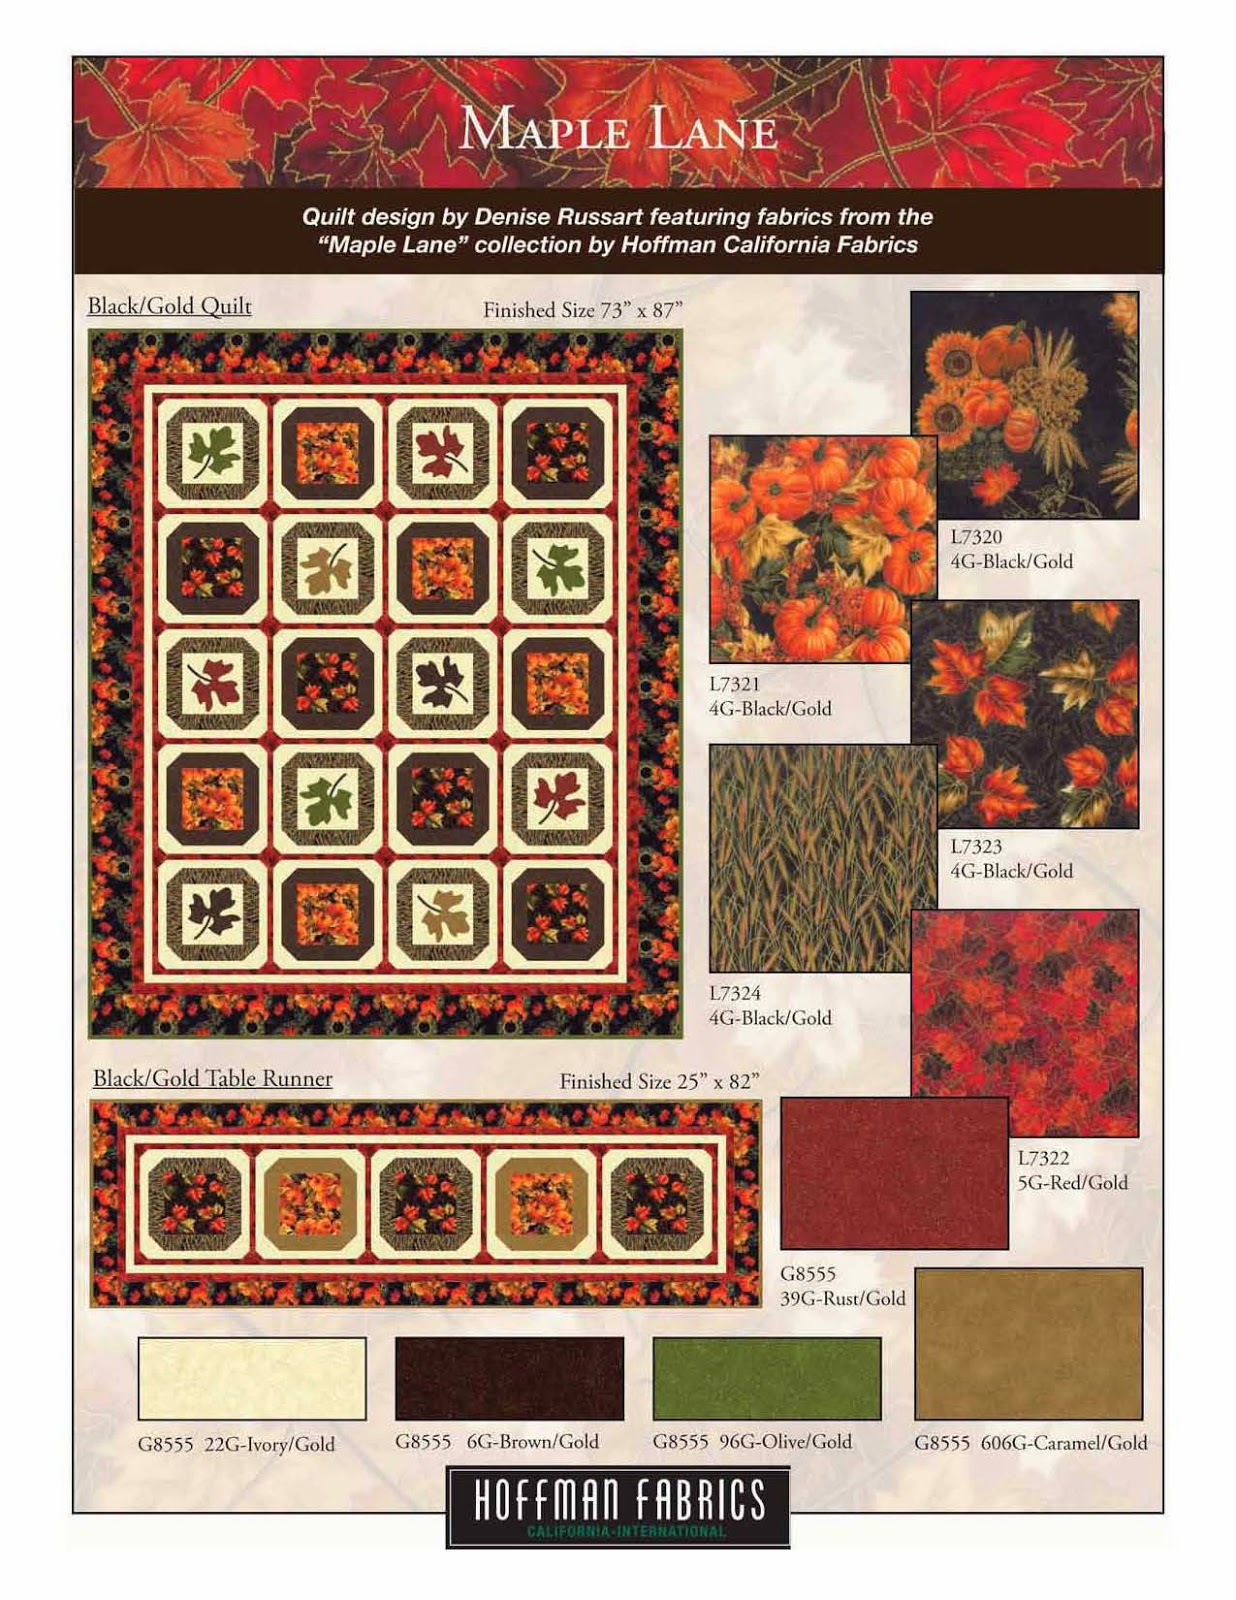 http://www.lovequilting.com/shop/free-hoffman-patterns/maple-lane/